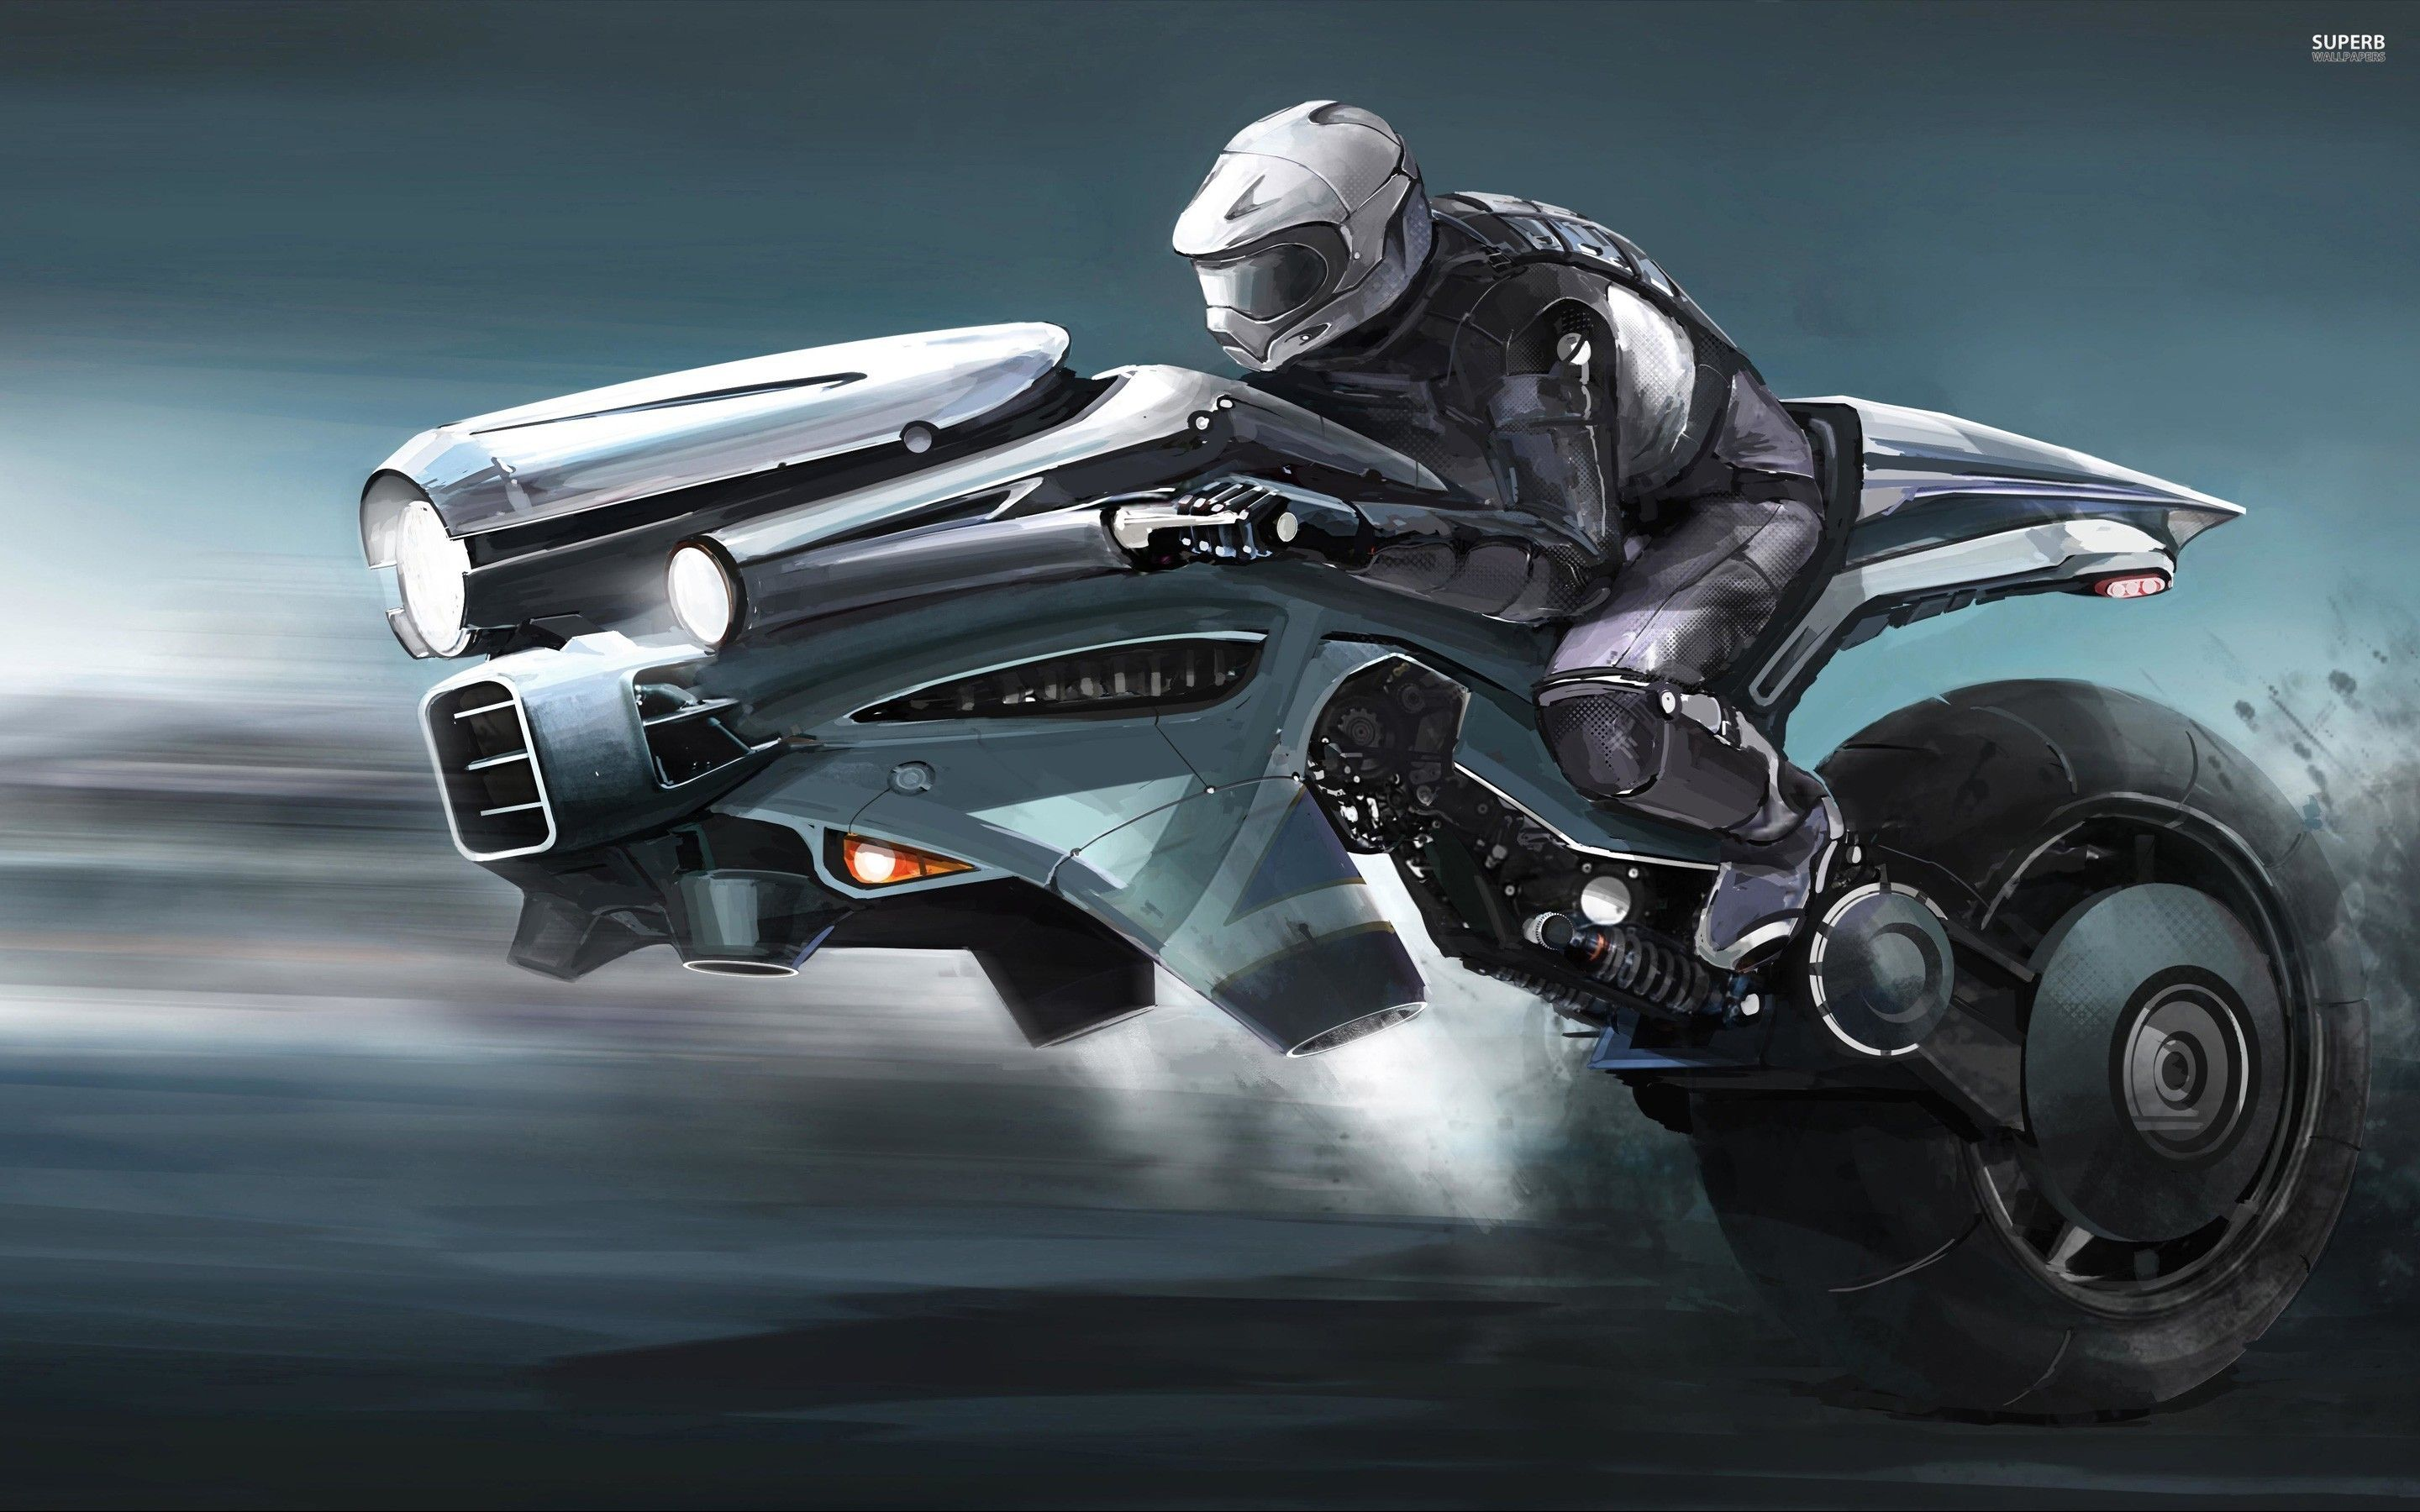 Future Flying Motorcycles Riding the futuristic bike